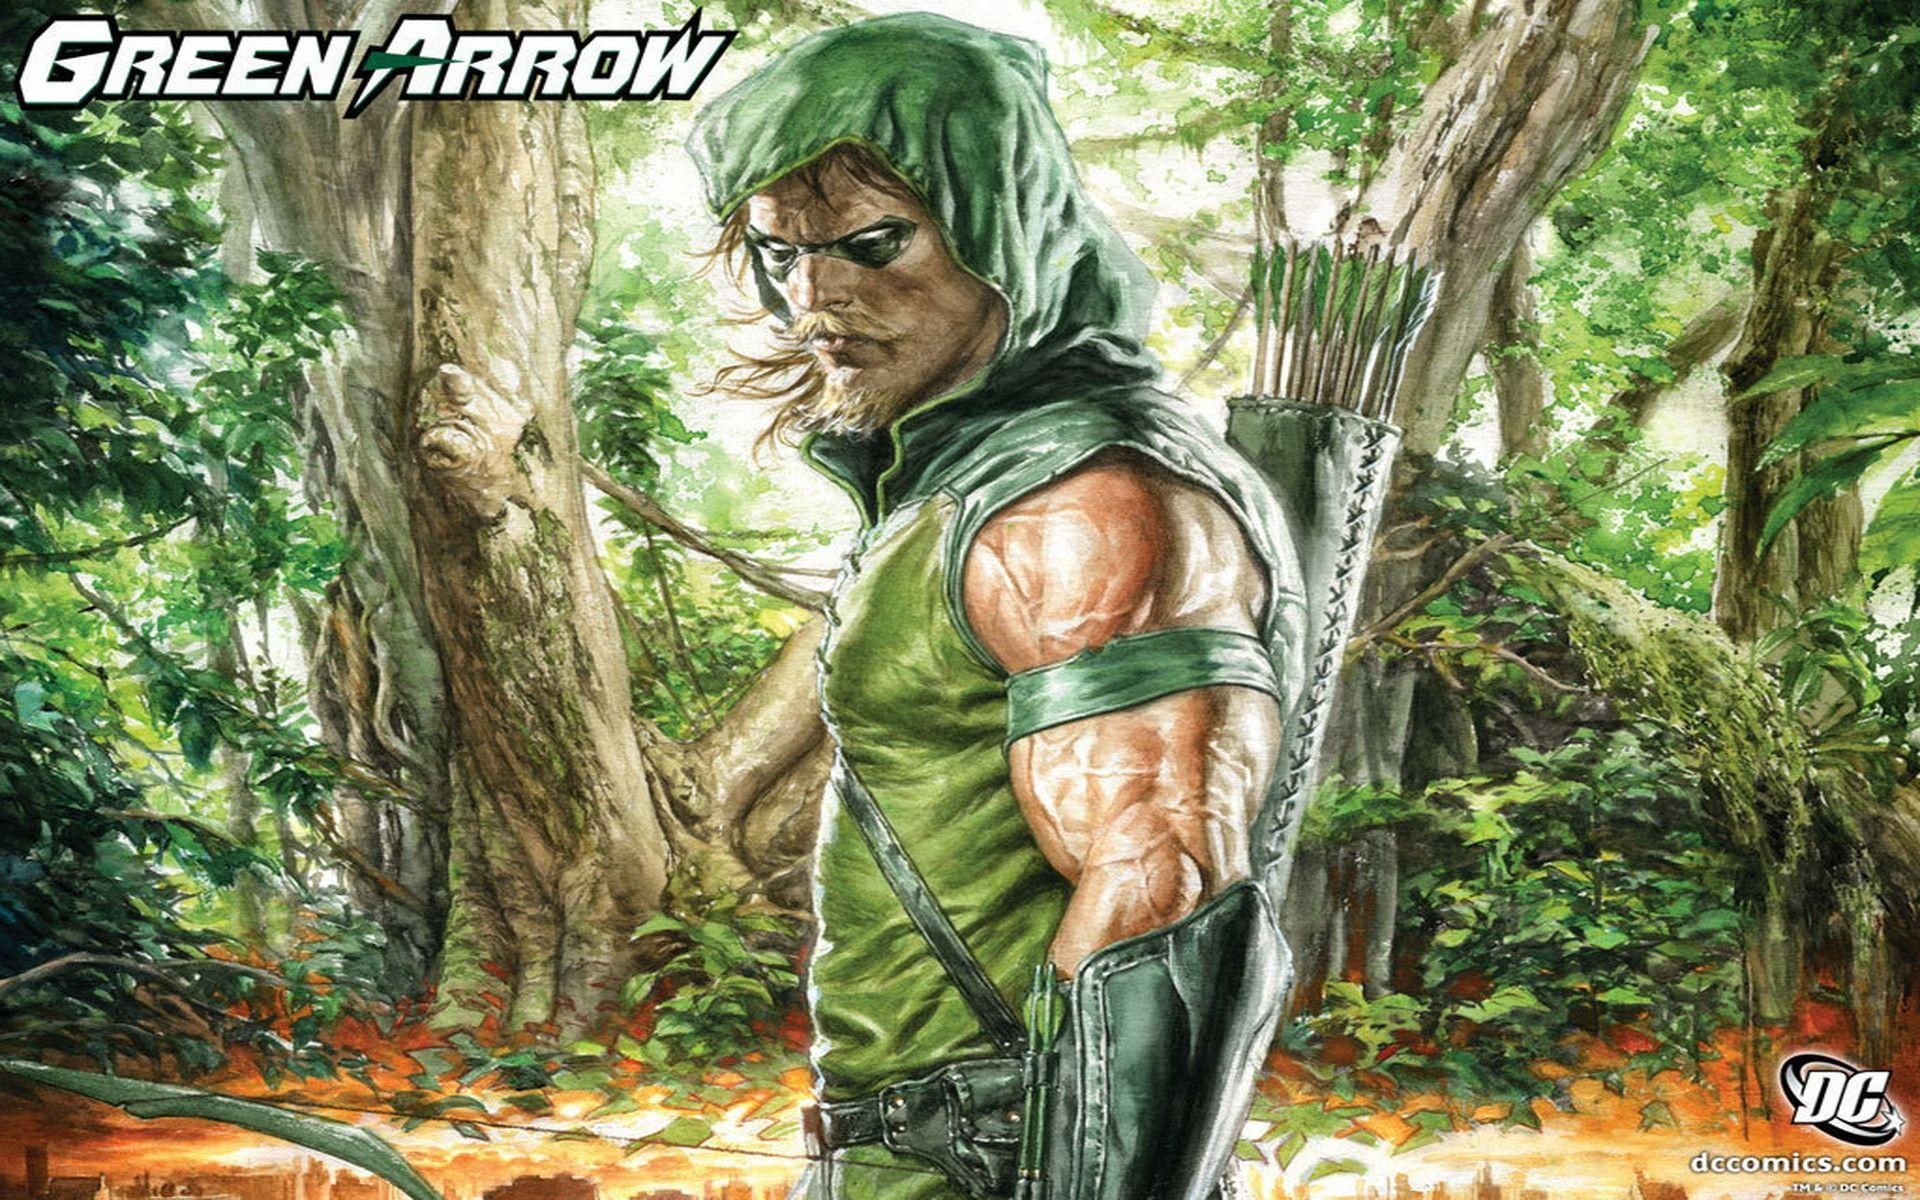 green arrow Computer Wallpapers, Desktop Backgrounds 1920x1200 Id